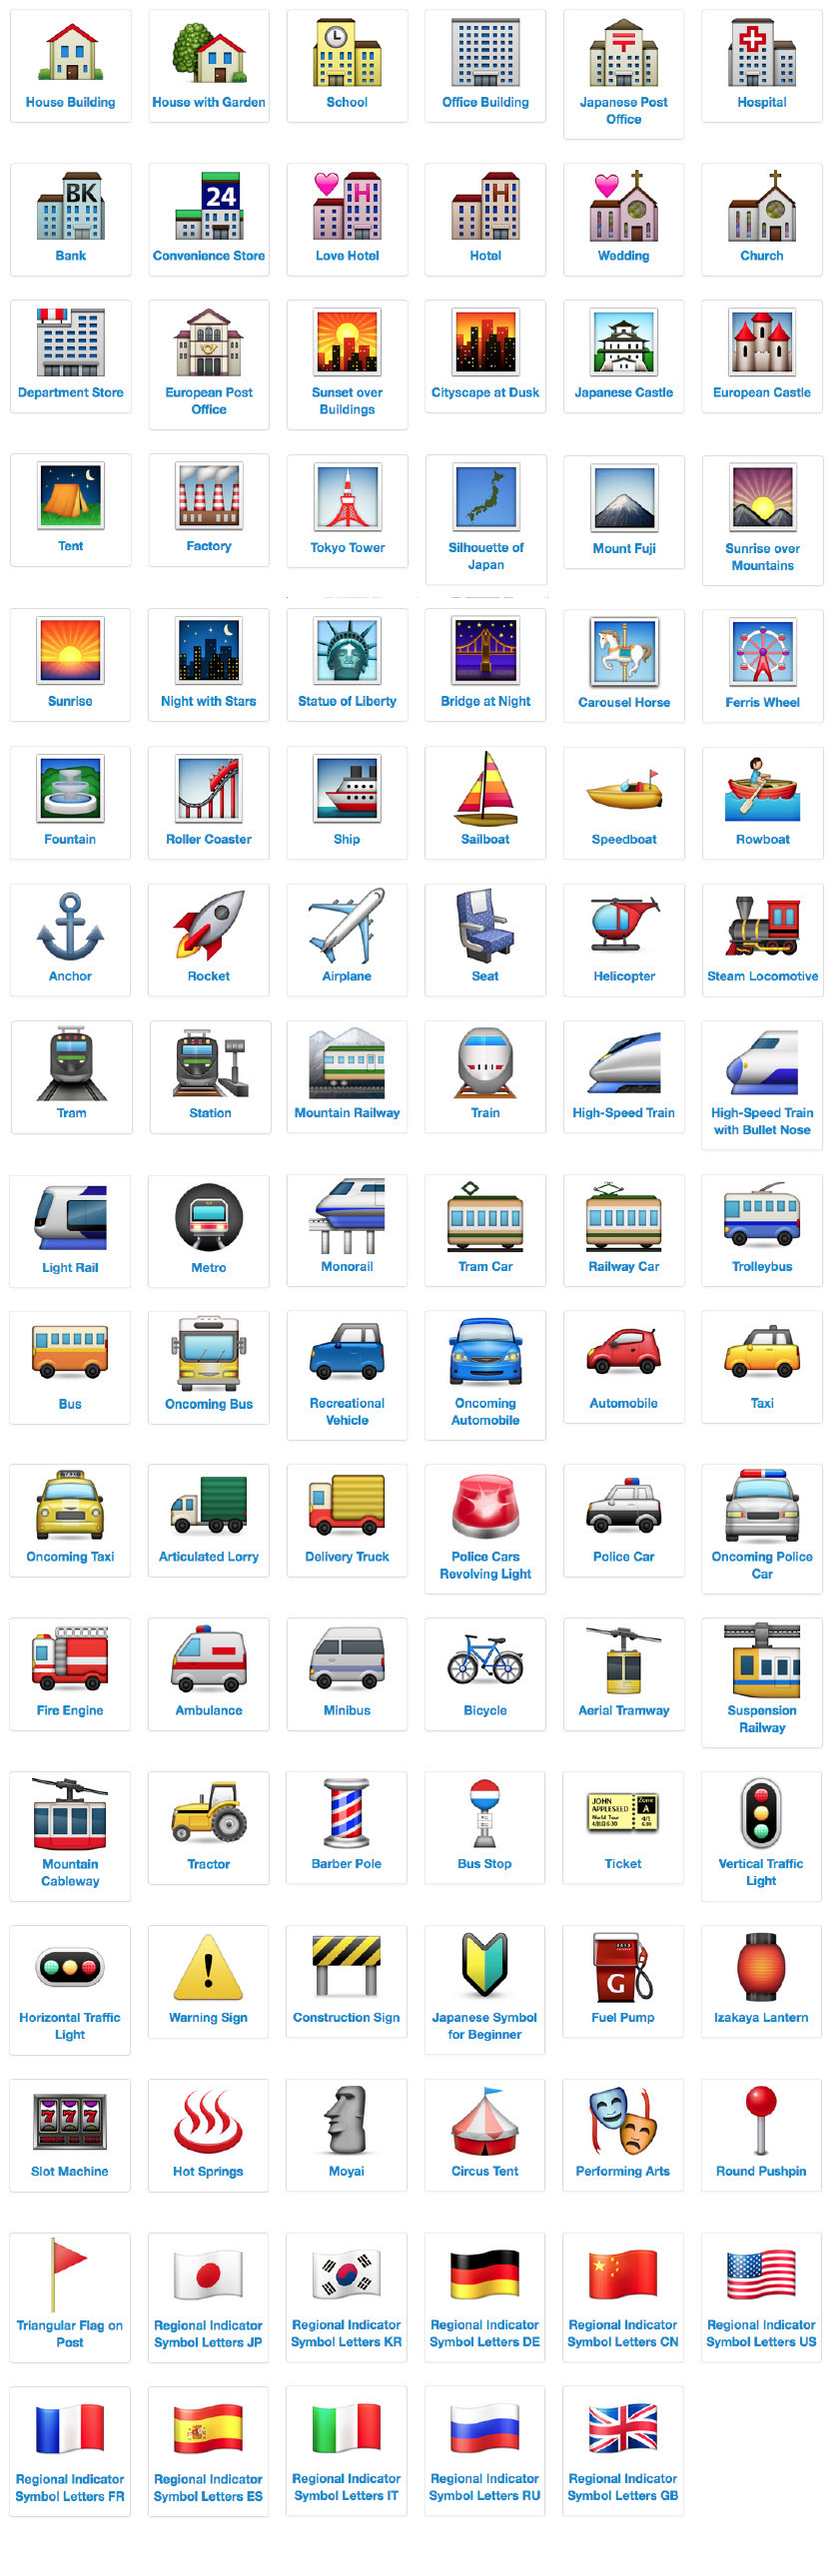 Emoji icon list symbols with meanings and definitions a bit o emoji icon list symbols with meanings and definitions a bit o this a bit o that pinterest emoji definitions and symbols biocorpaavc Image collections